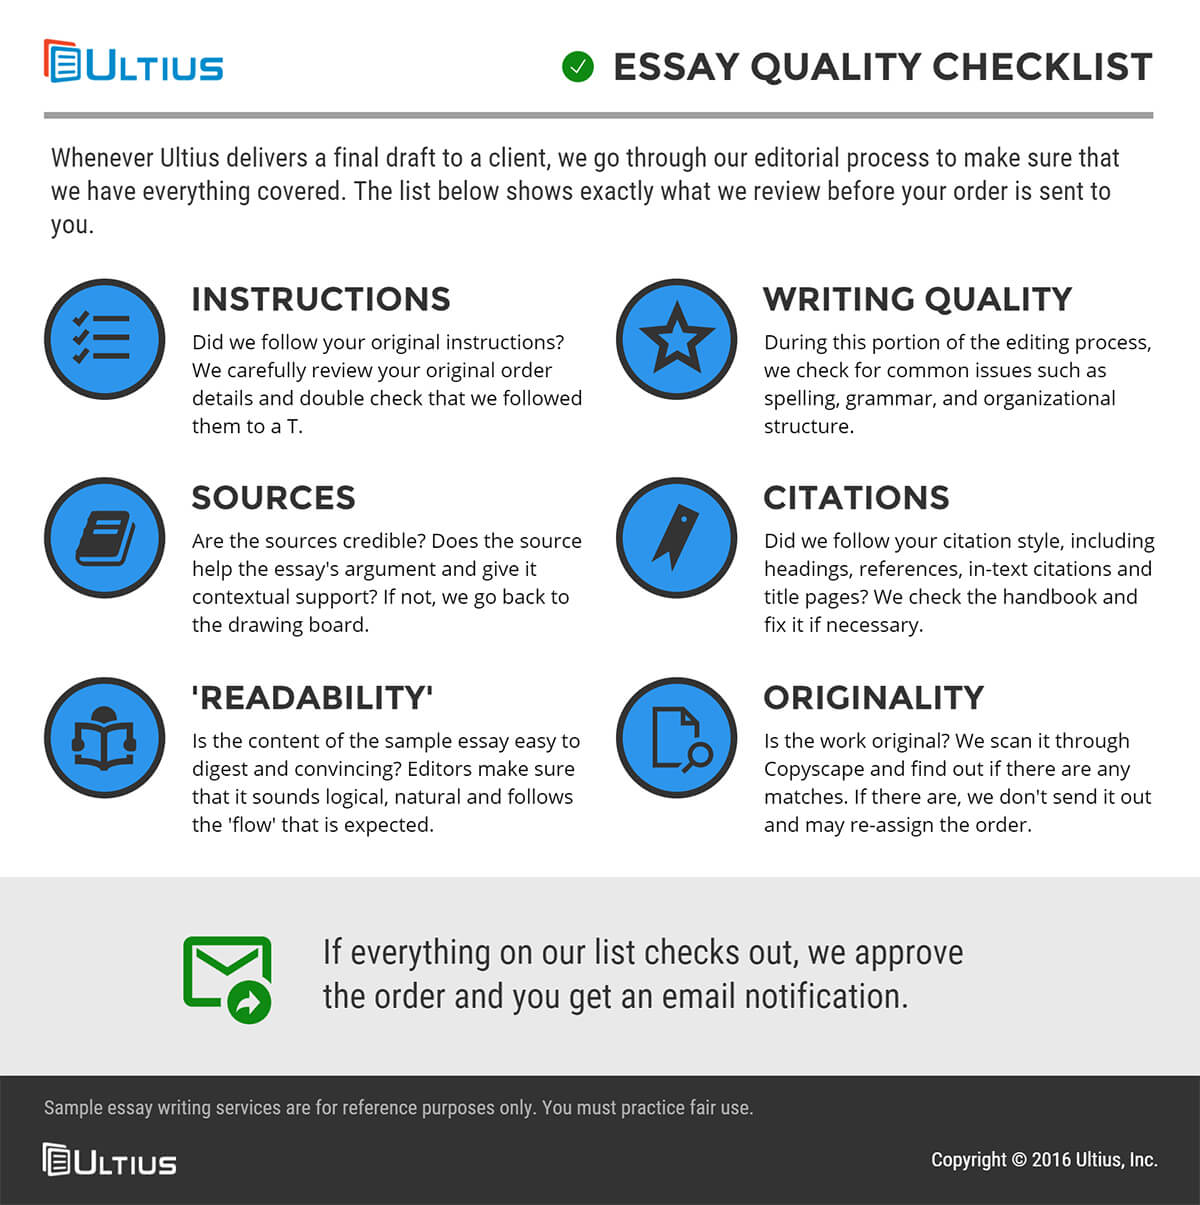 014 Essay Example Purchased Quality Checklist Dreaded Persuasive Speech Topics For Elementary Outline Rubric 10th Grade Full